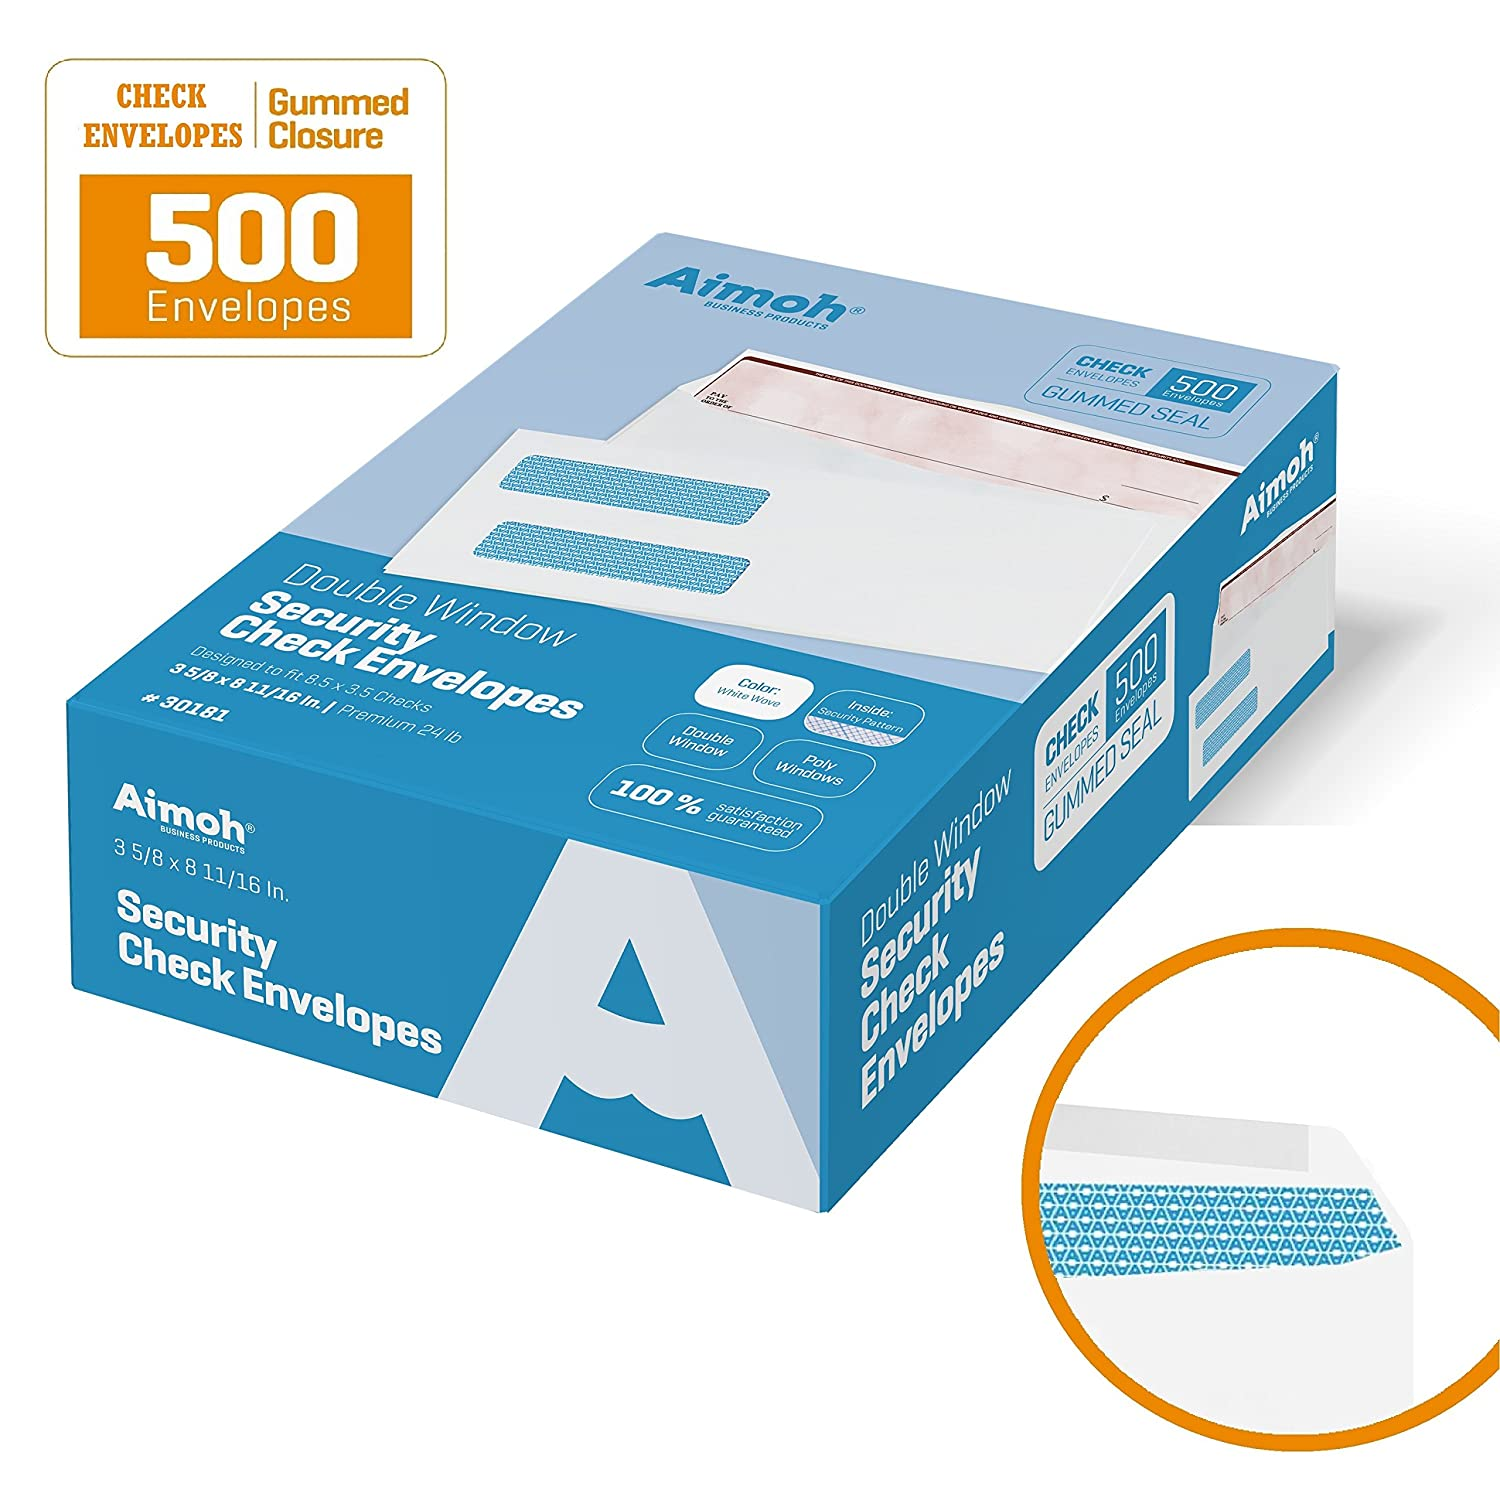 500 Double Window Check Envelopes - Size 3 5/8 x 8 11/16 for Business Checks, Perfect Fit (No Sliding or Moving) Security Tint - GUMMED Closure - 500 Count, NOT for INVOICES (30181) Aimoh